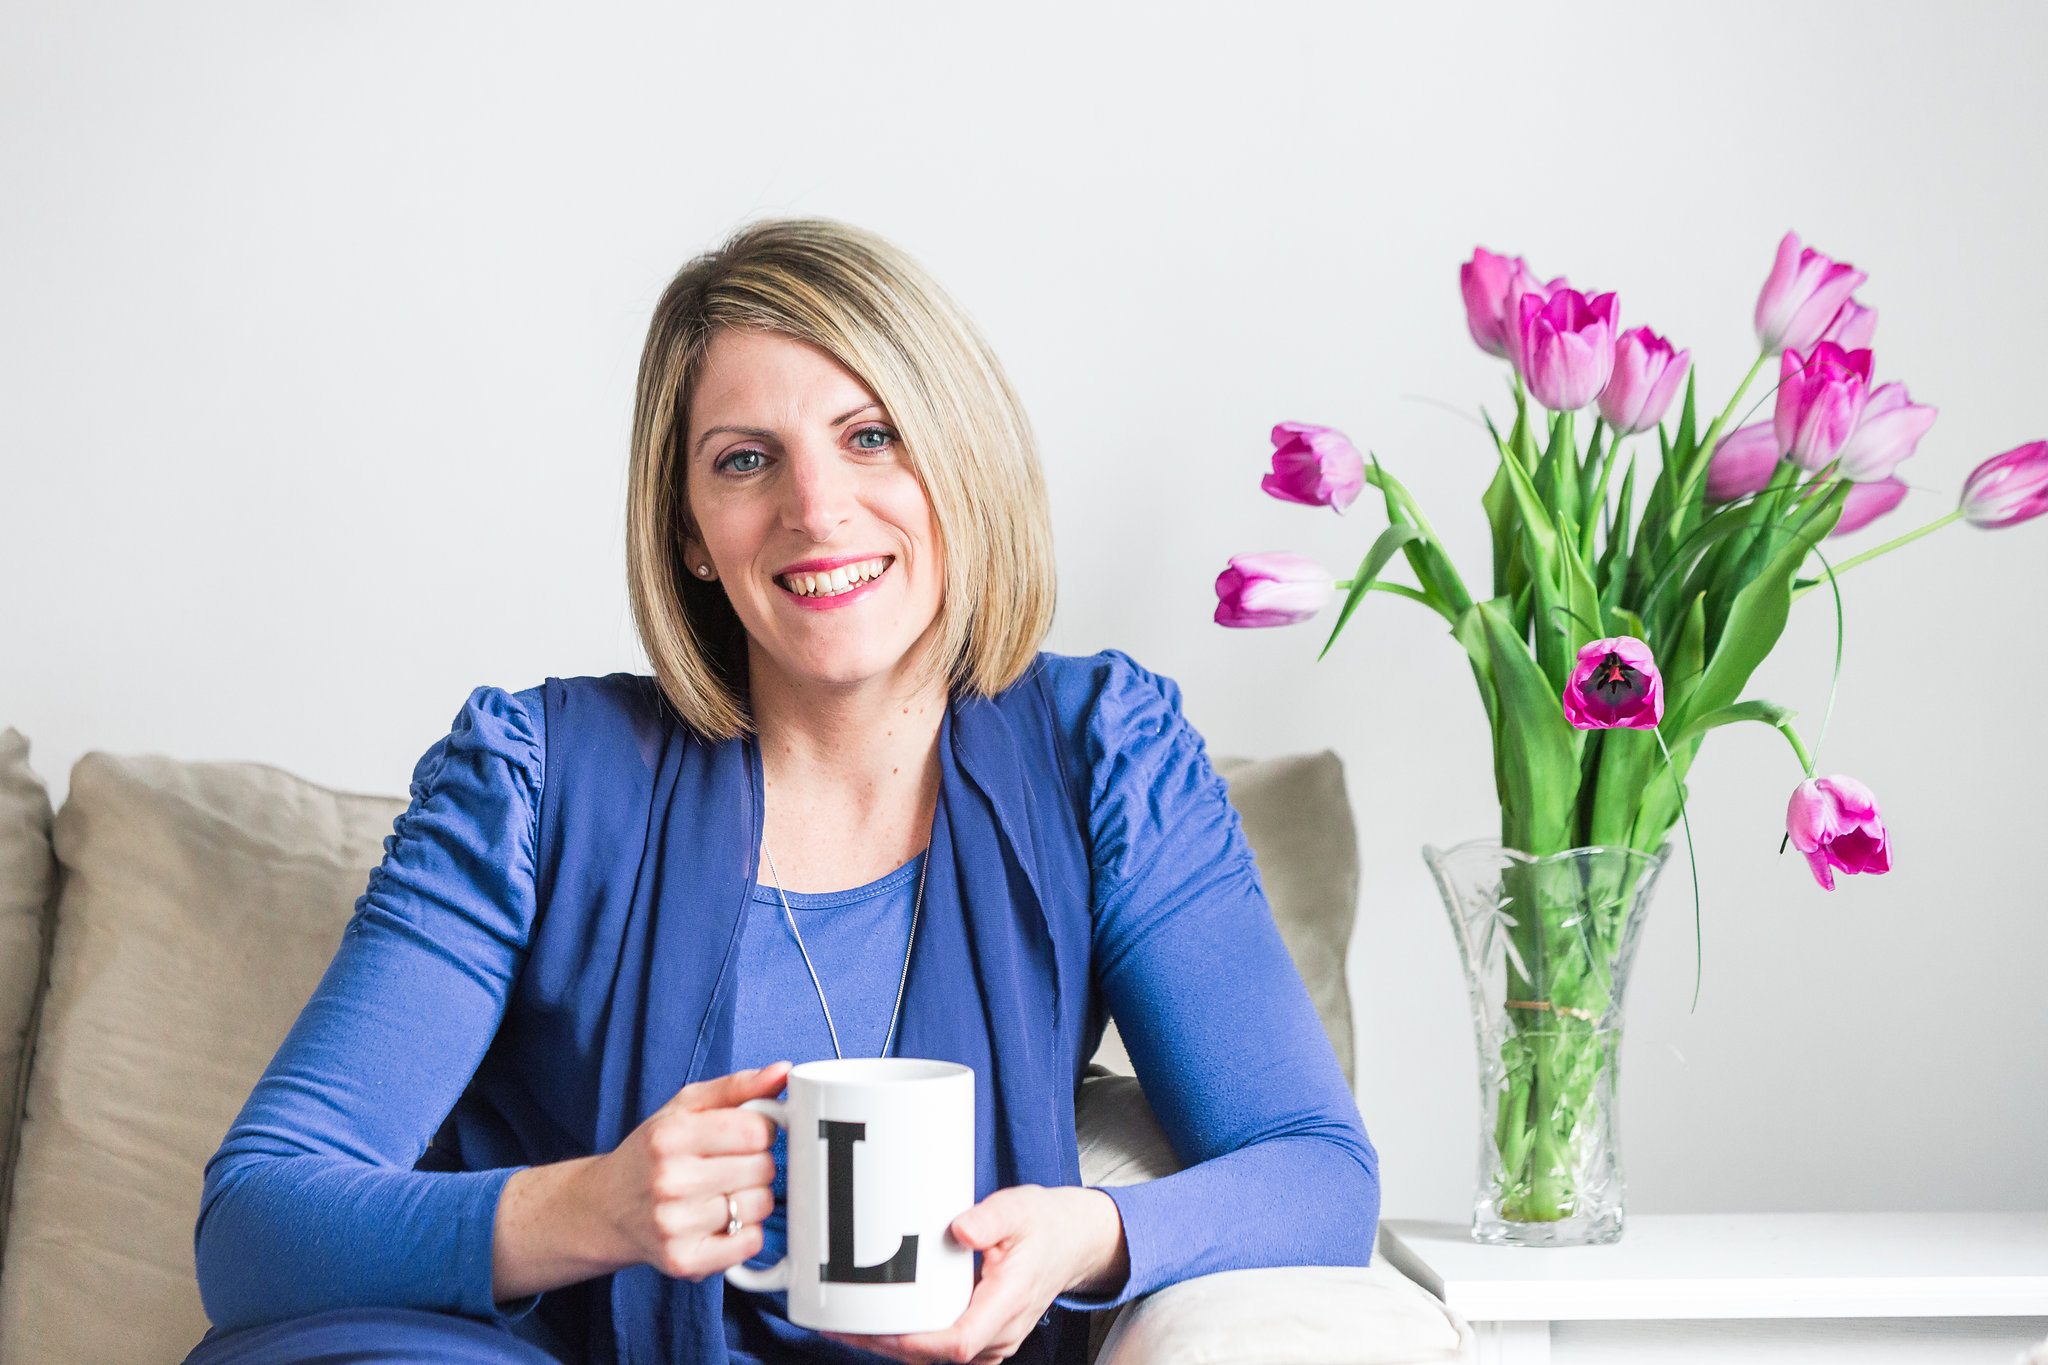 Lauren Parsons Wellbeing Specialist Speaker an Author on Workplace Wellness